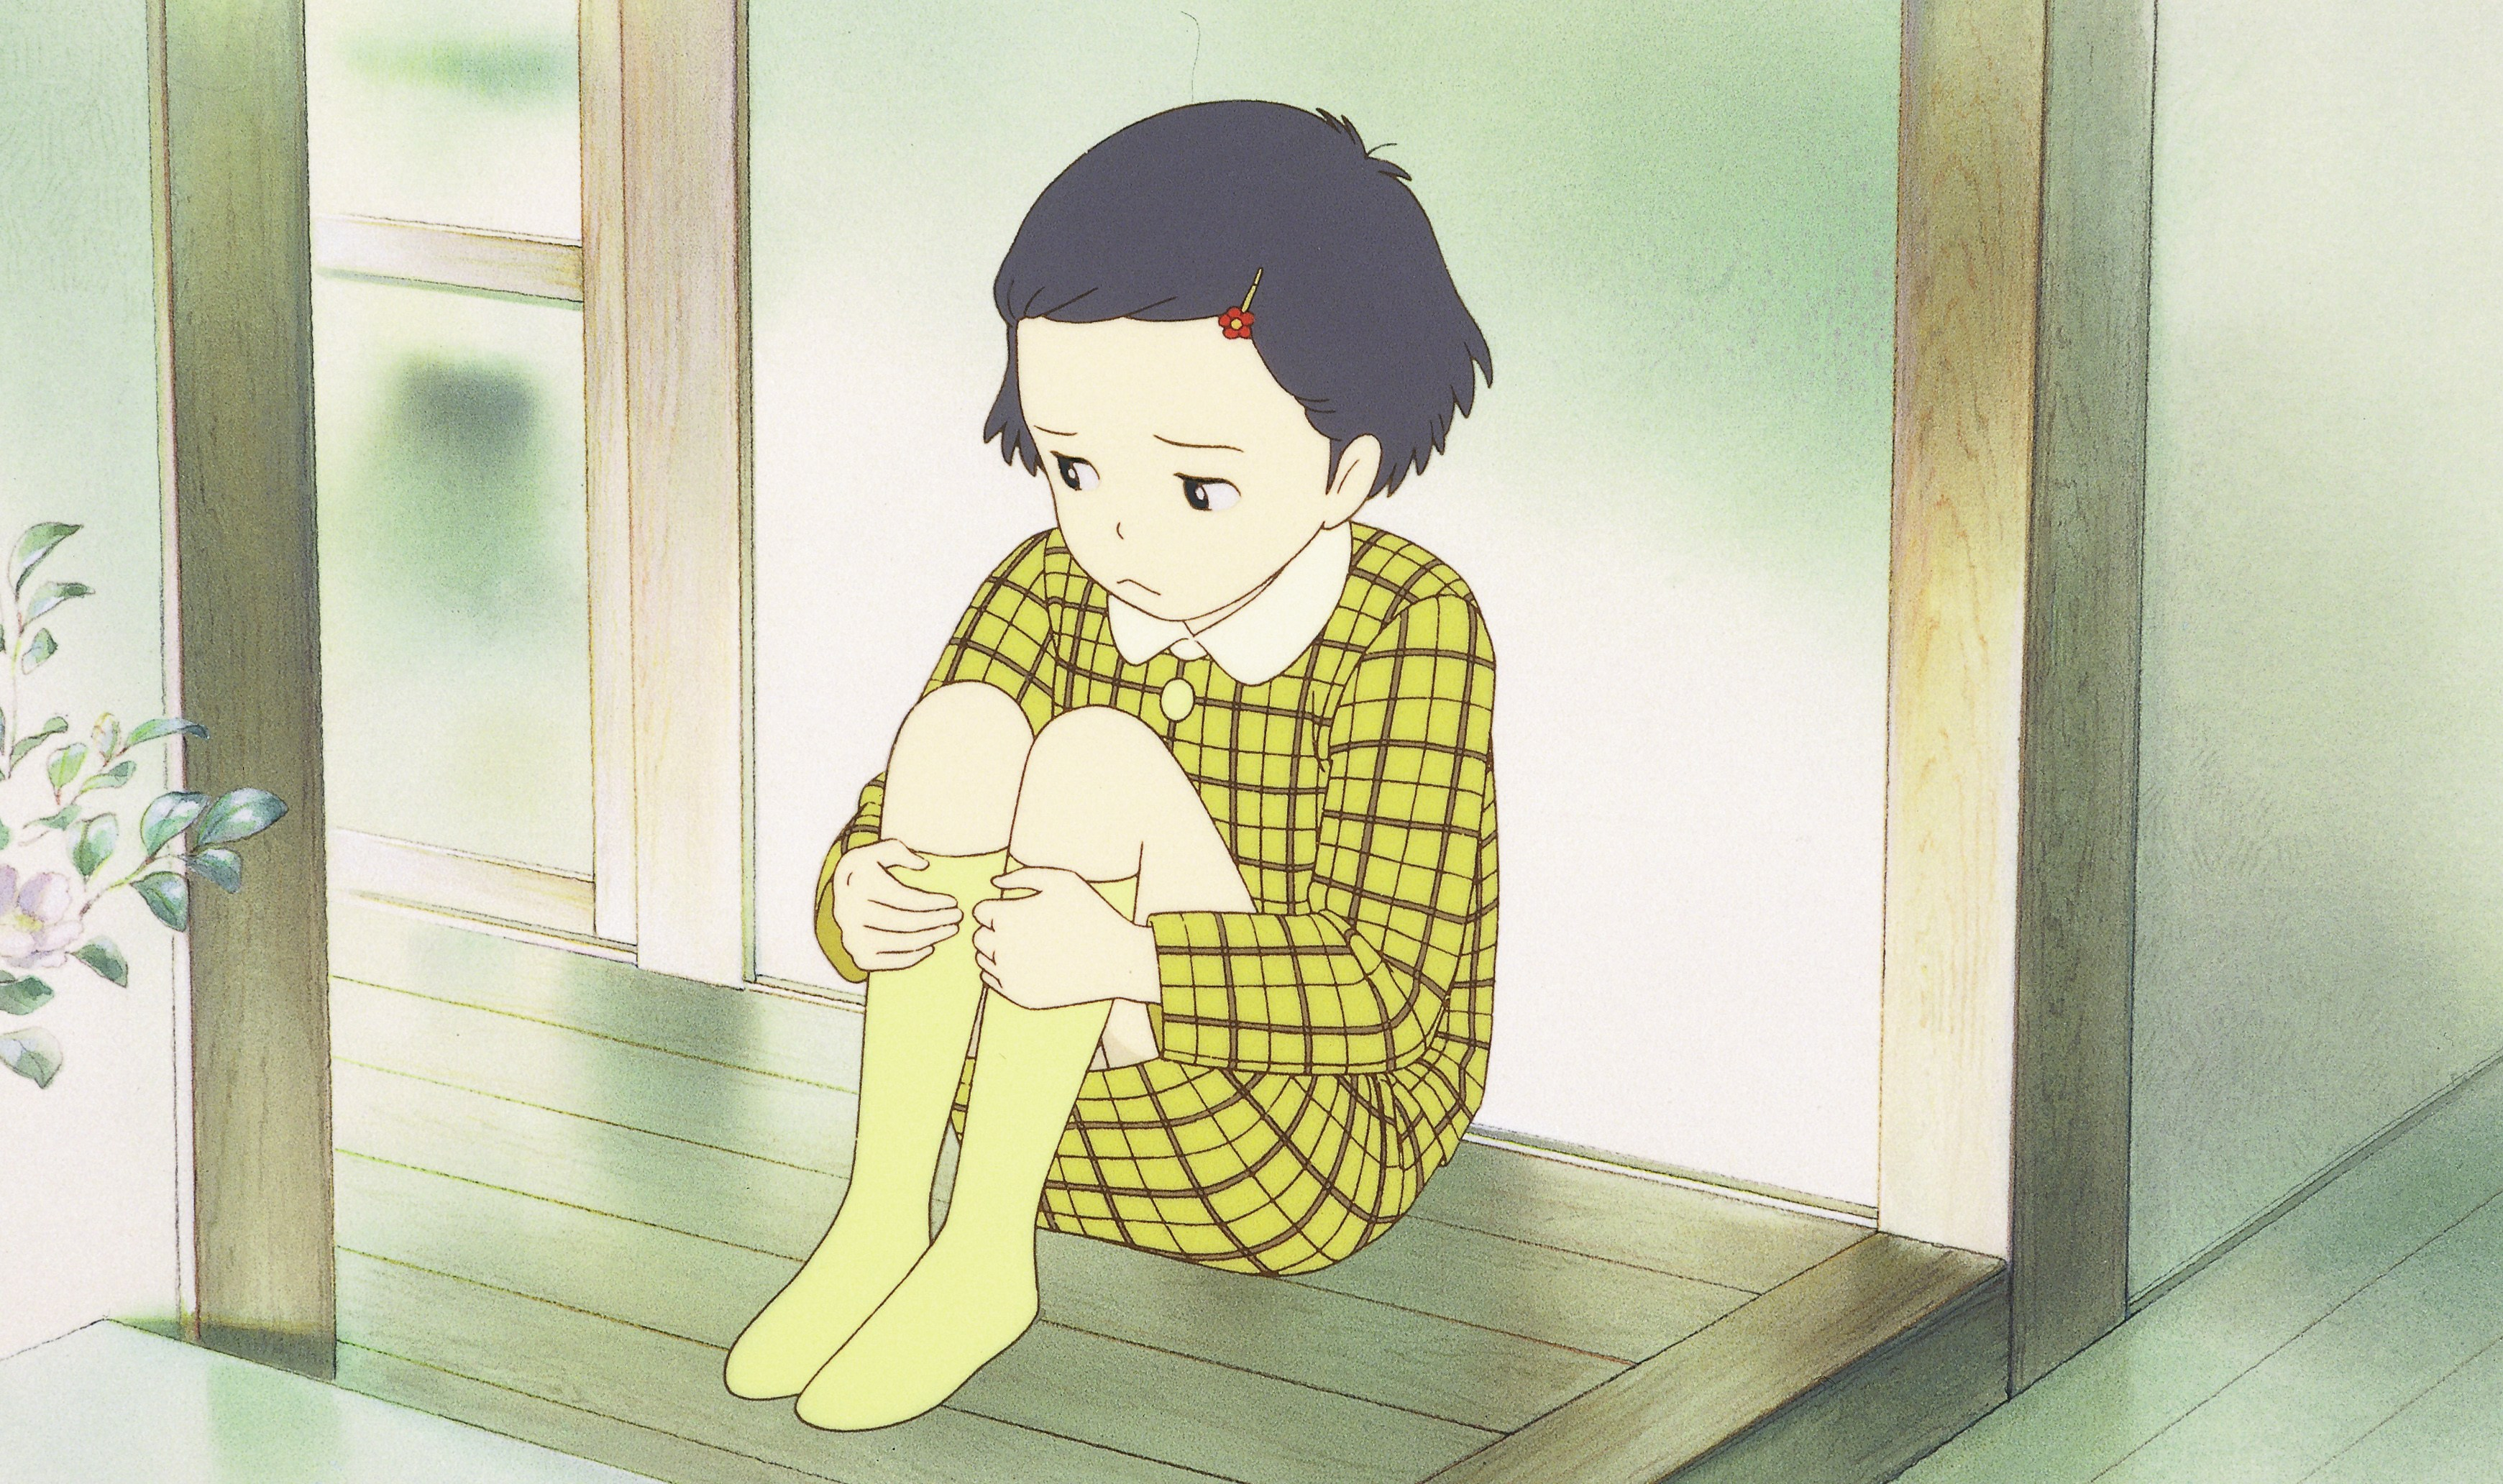 Only Yesterday review: You couldn't legally watch this amazing Japanese film in the US — until now